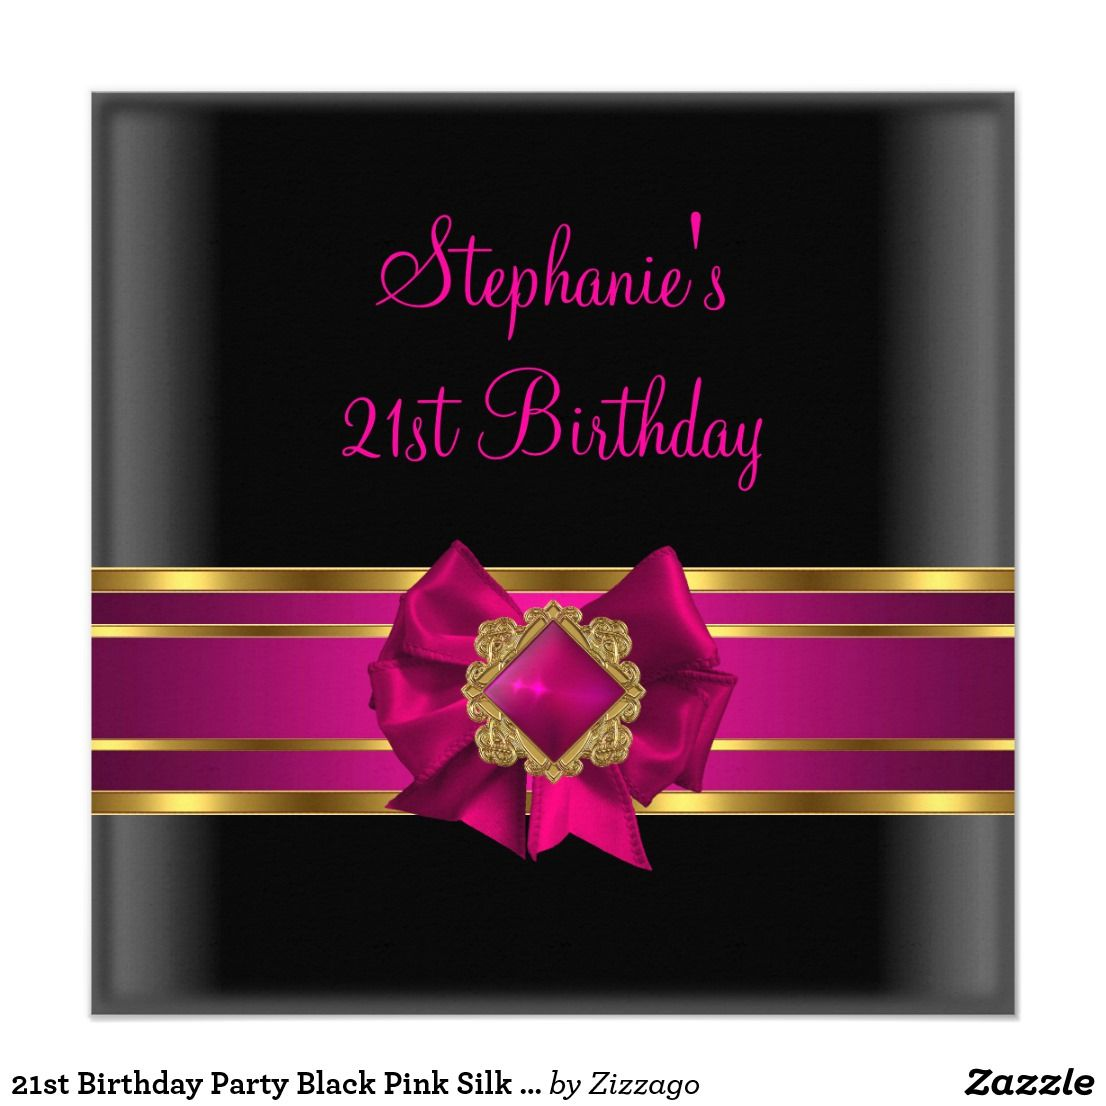 21st Birthday Party Black Pink Silk Gold Jewel Card Dark Celebration Invitation